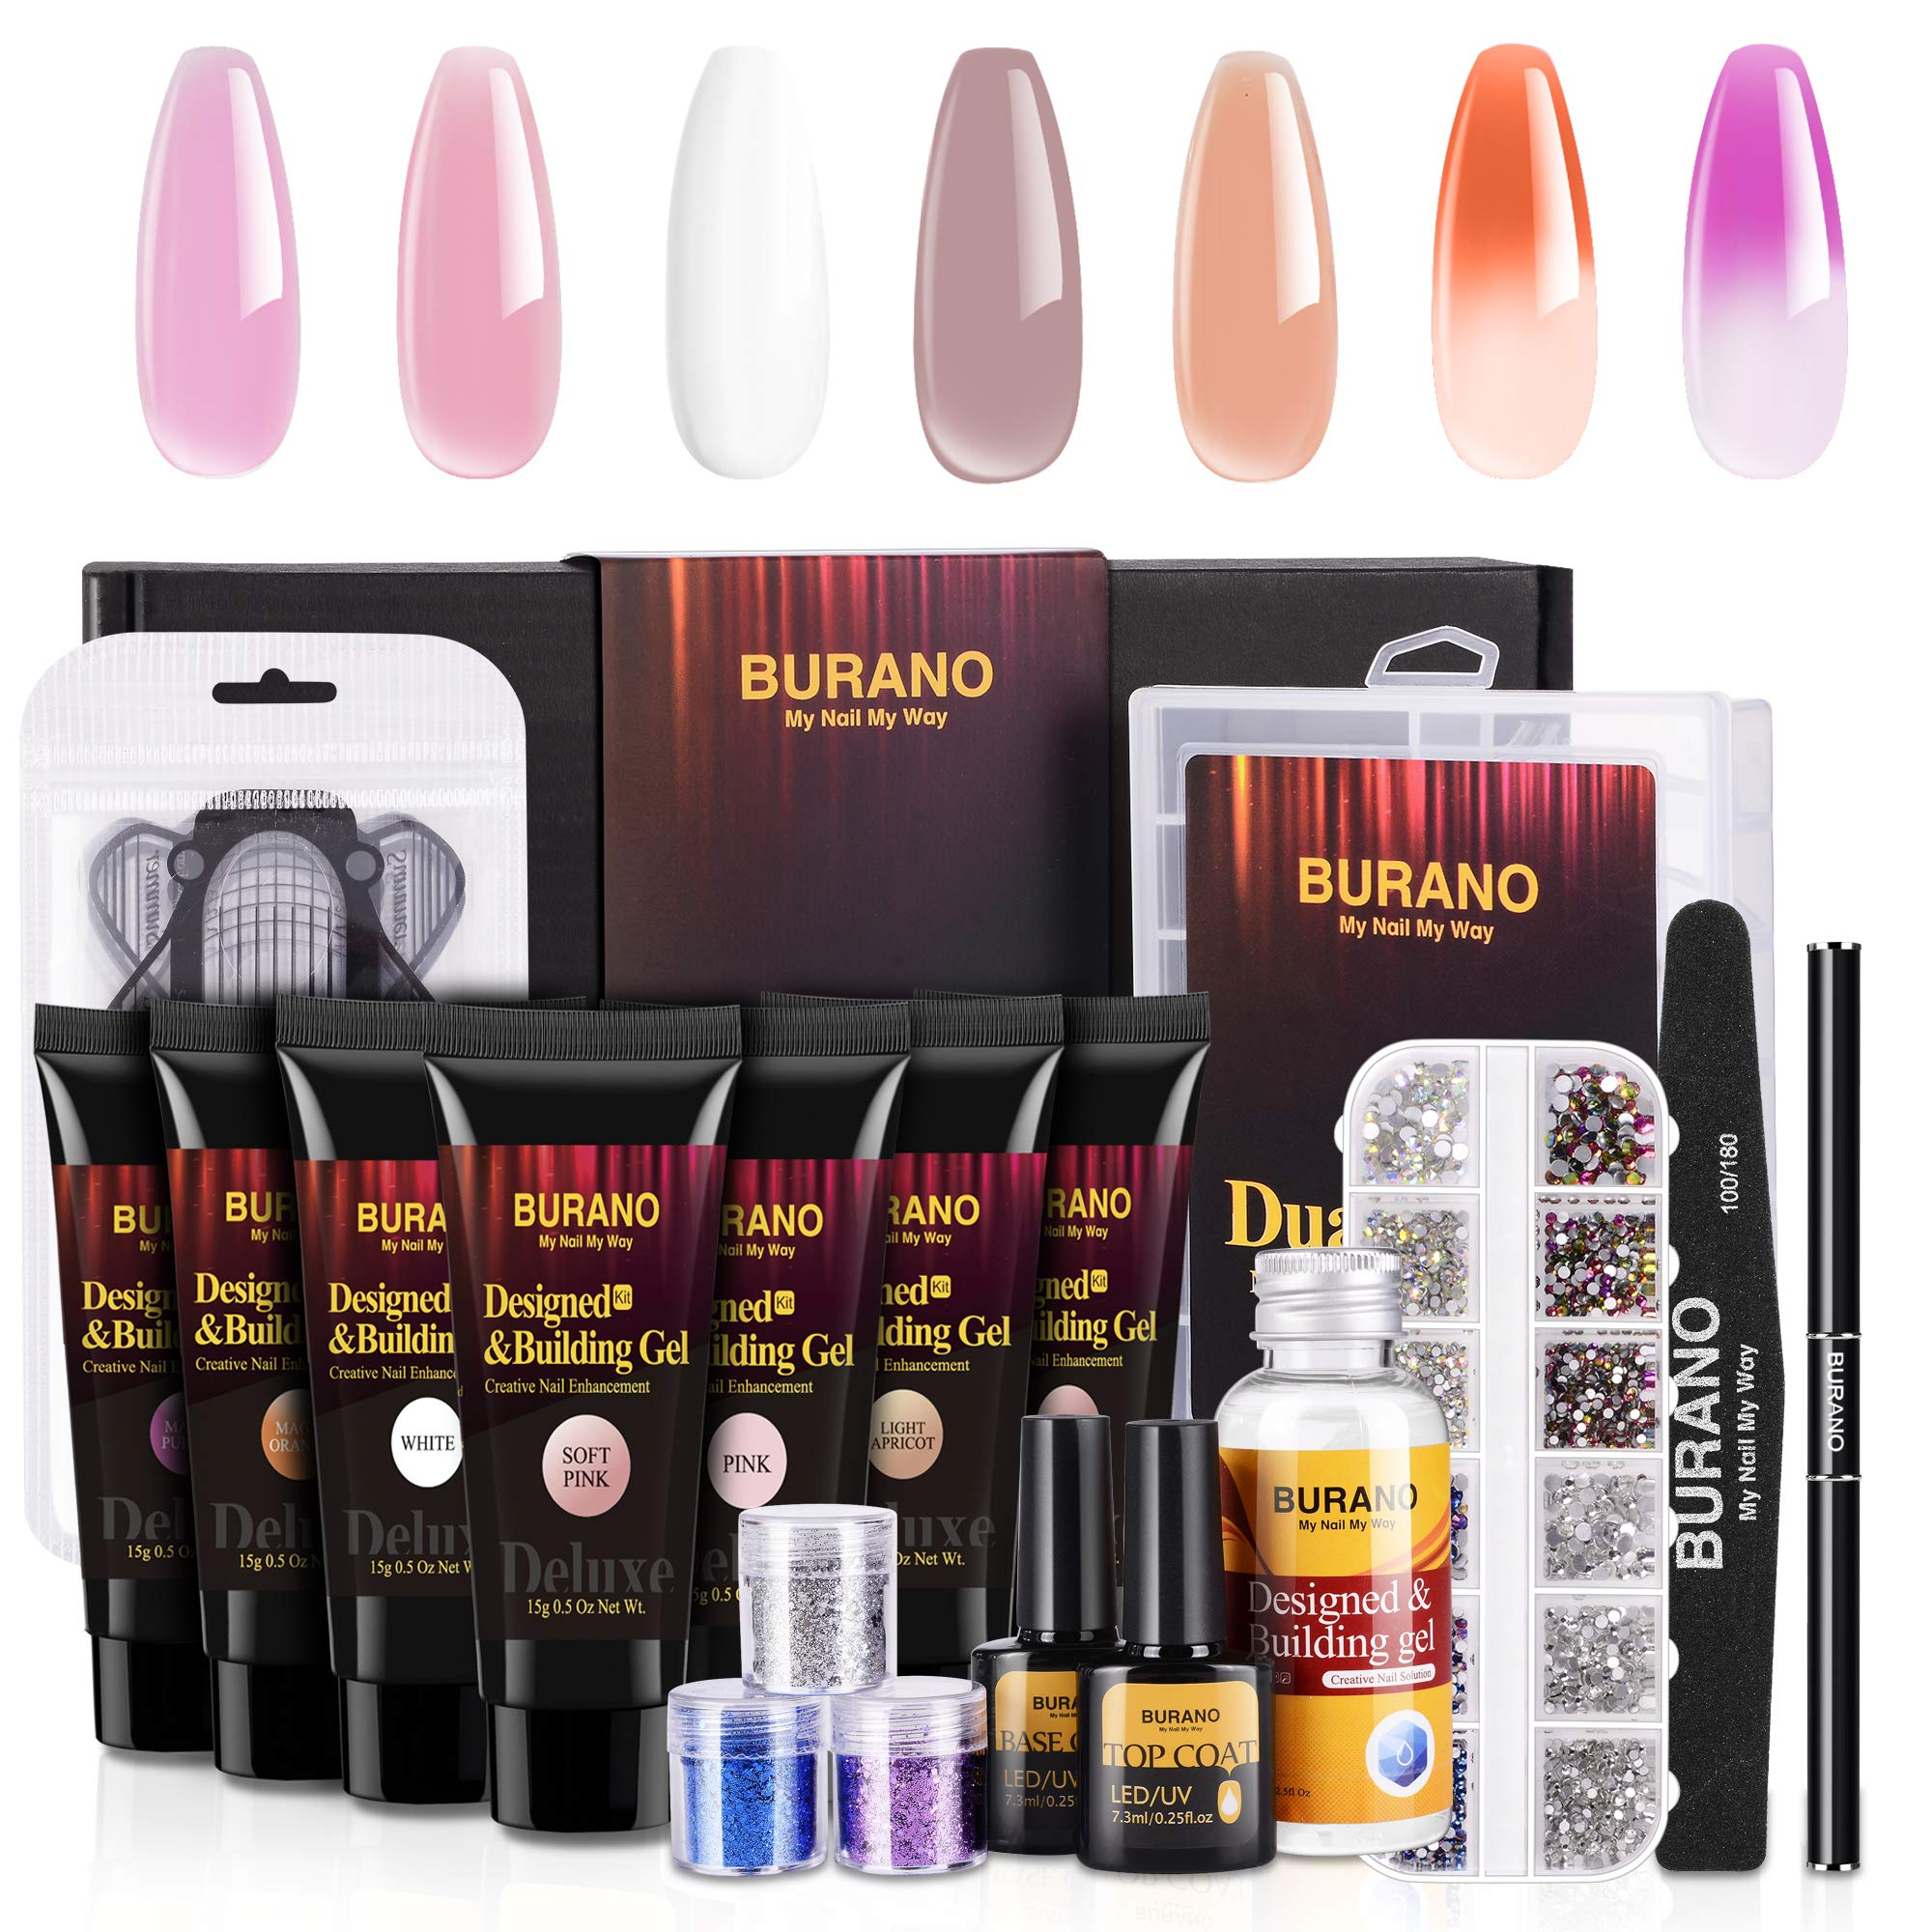 BURANO Deluxe Poly Nail Gel Kit with 7 Color Builder Gel, 3 Boxes Glitter Nail Sequins, AB Crystal Rhinestones, Temperature Color Changing Extension Nail Art Enhancement Kit with Slip Solution by BURANO